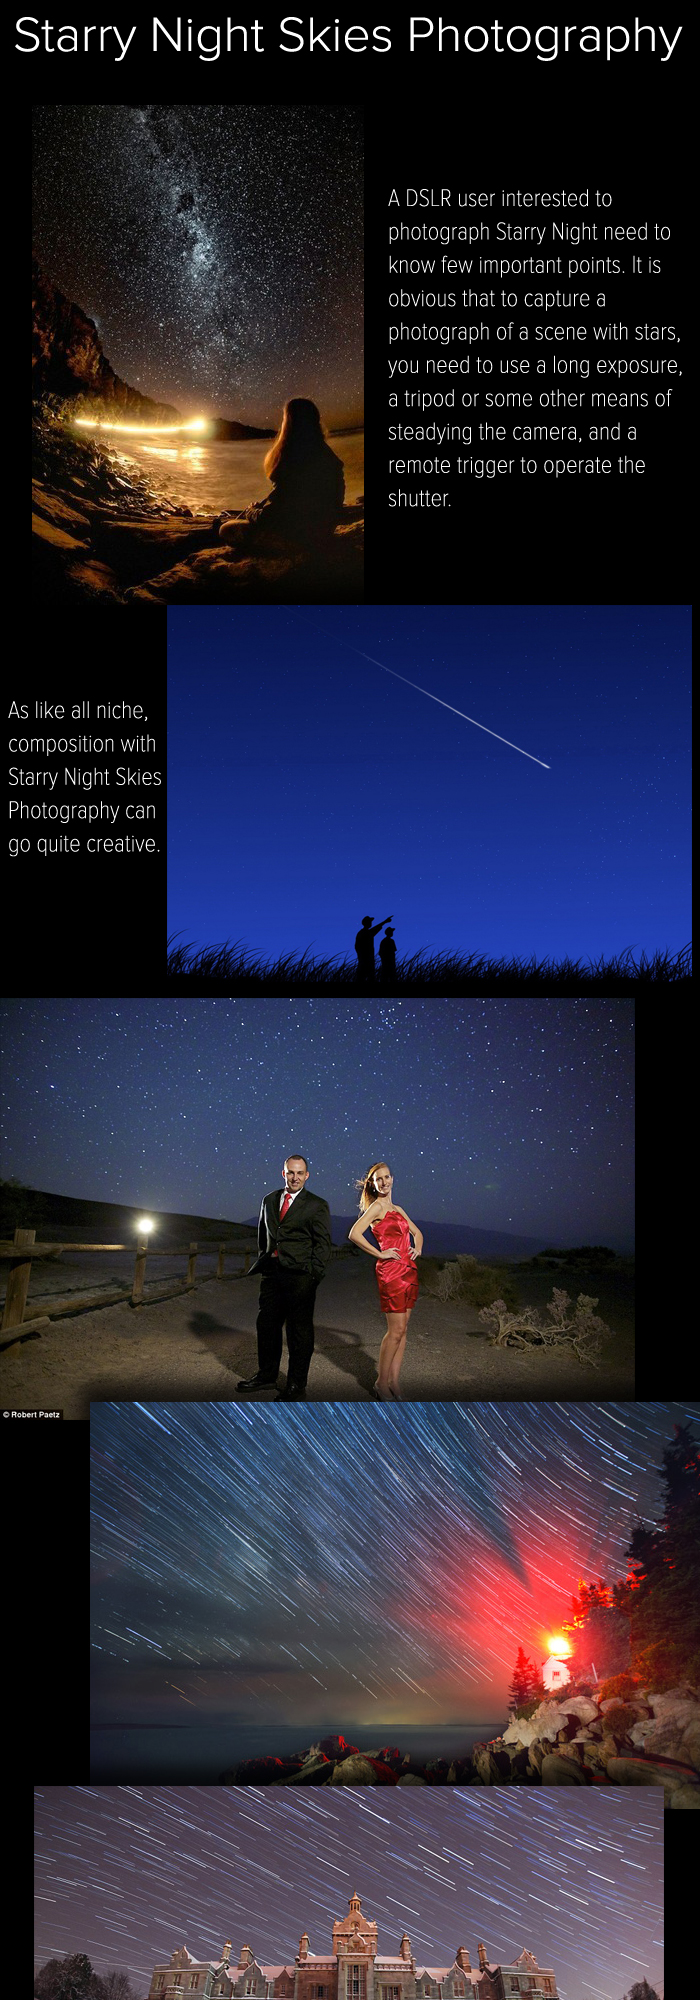 Starry-Night-Skies-Photography